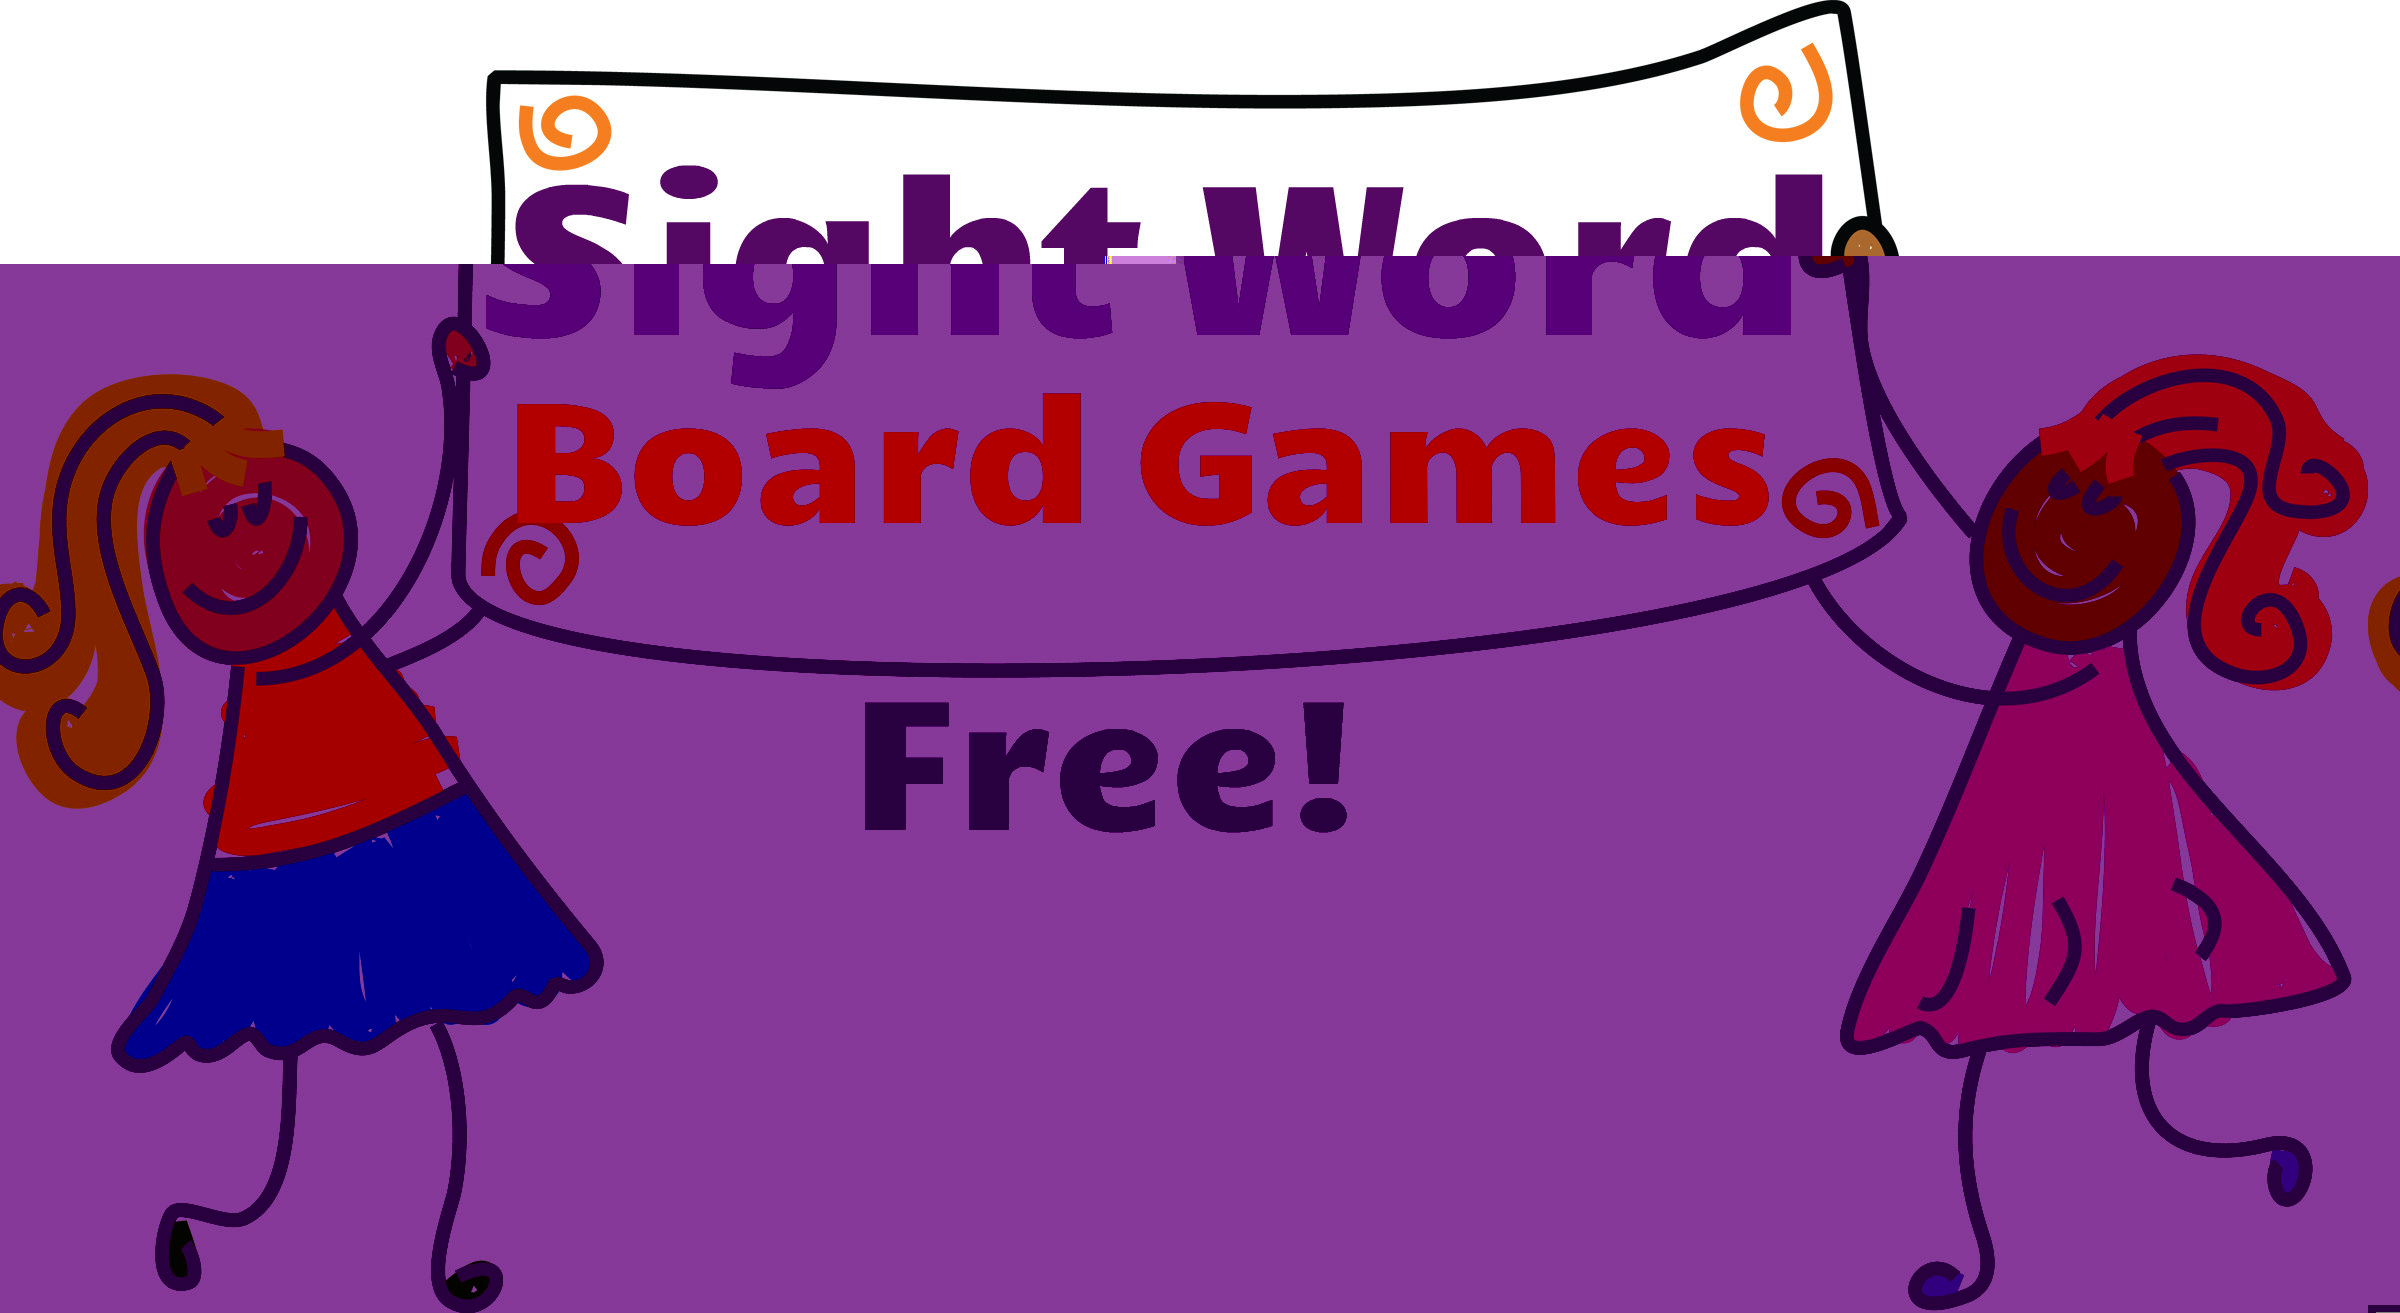 Activities clipart board game. Sight word games free